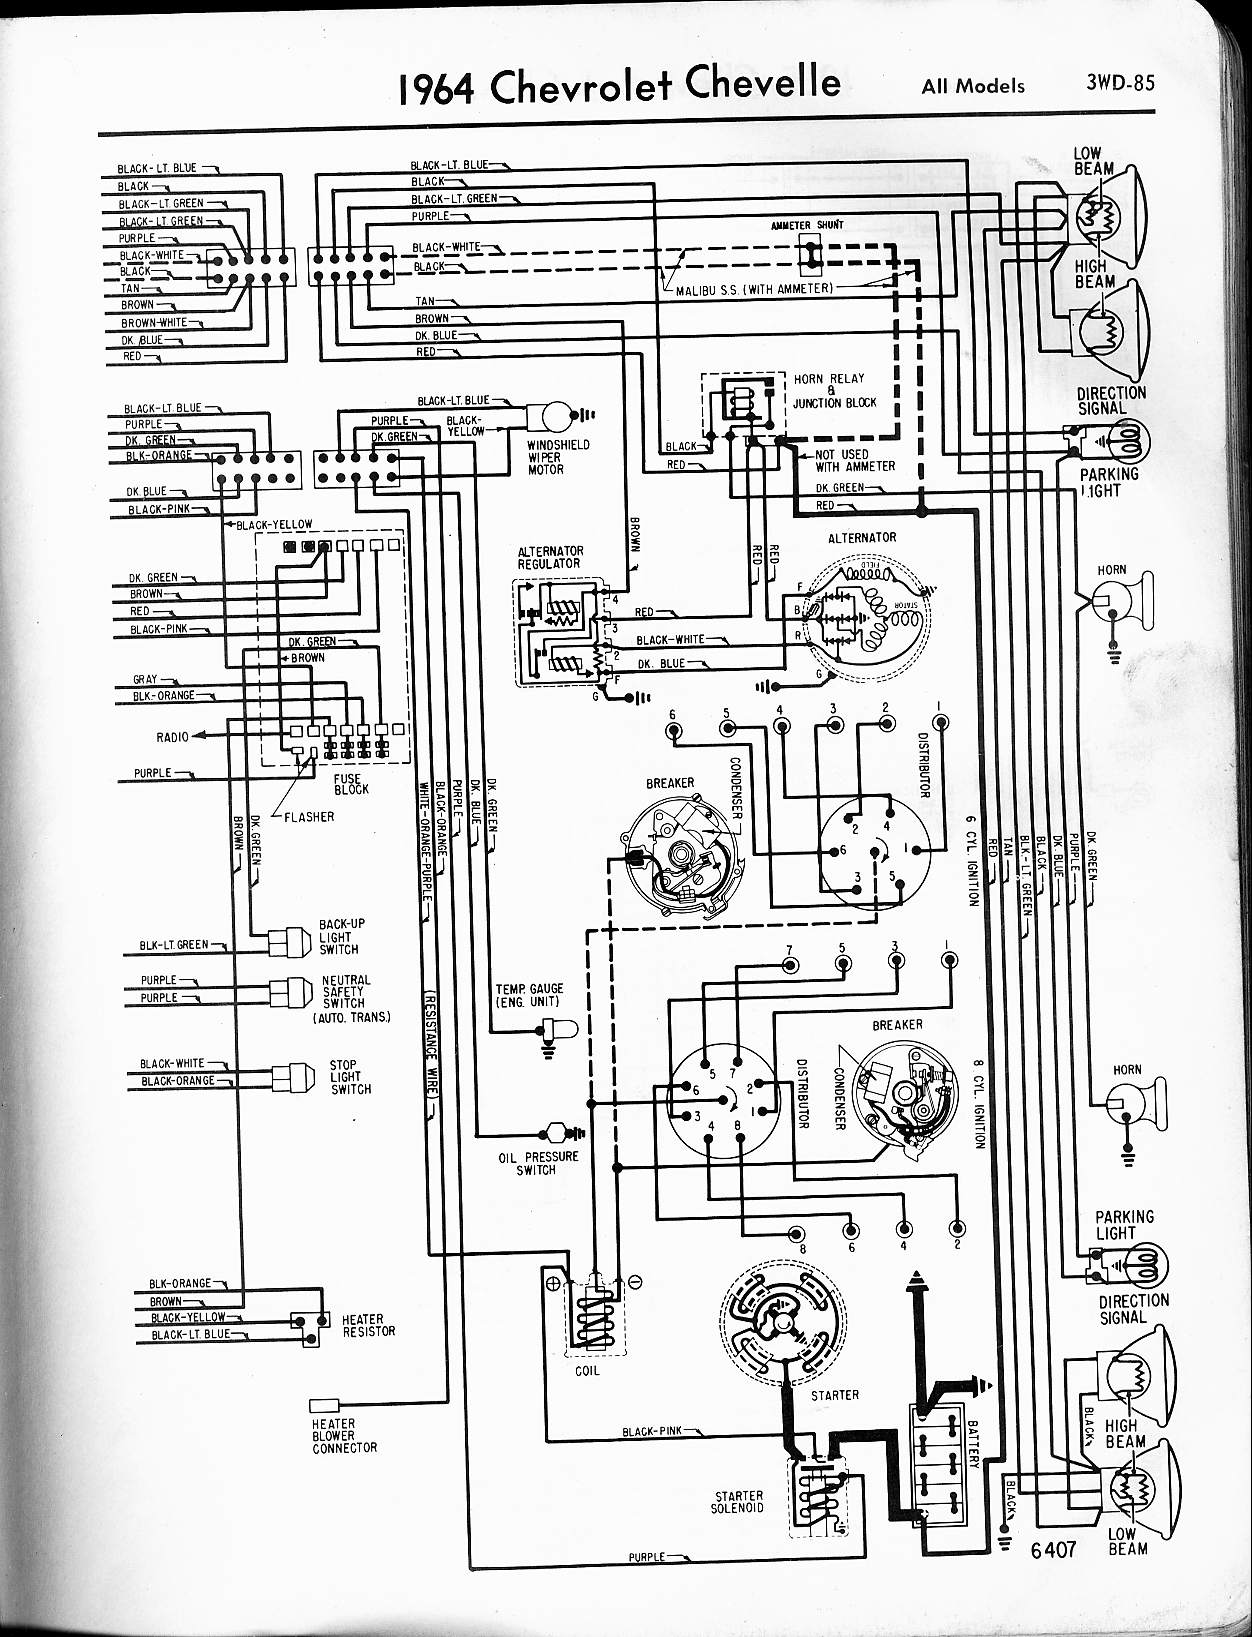 hight resolution of 1970 chevelle wiring diagram in addition for wiring diagram and 1973 mustang ac wiring diagram 1970 chevelle ac wiring diagram schematic